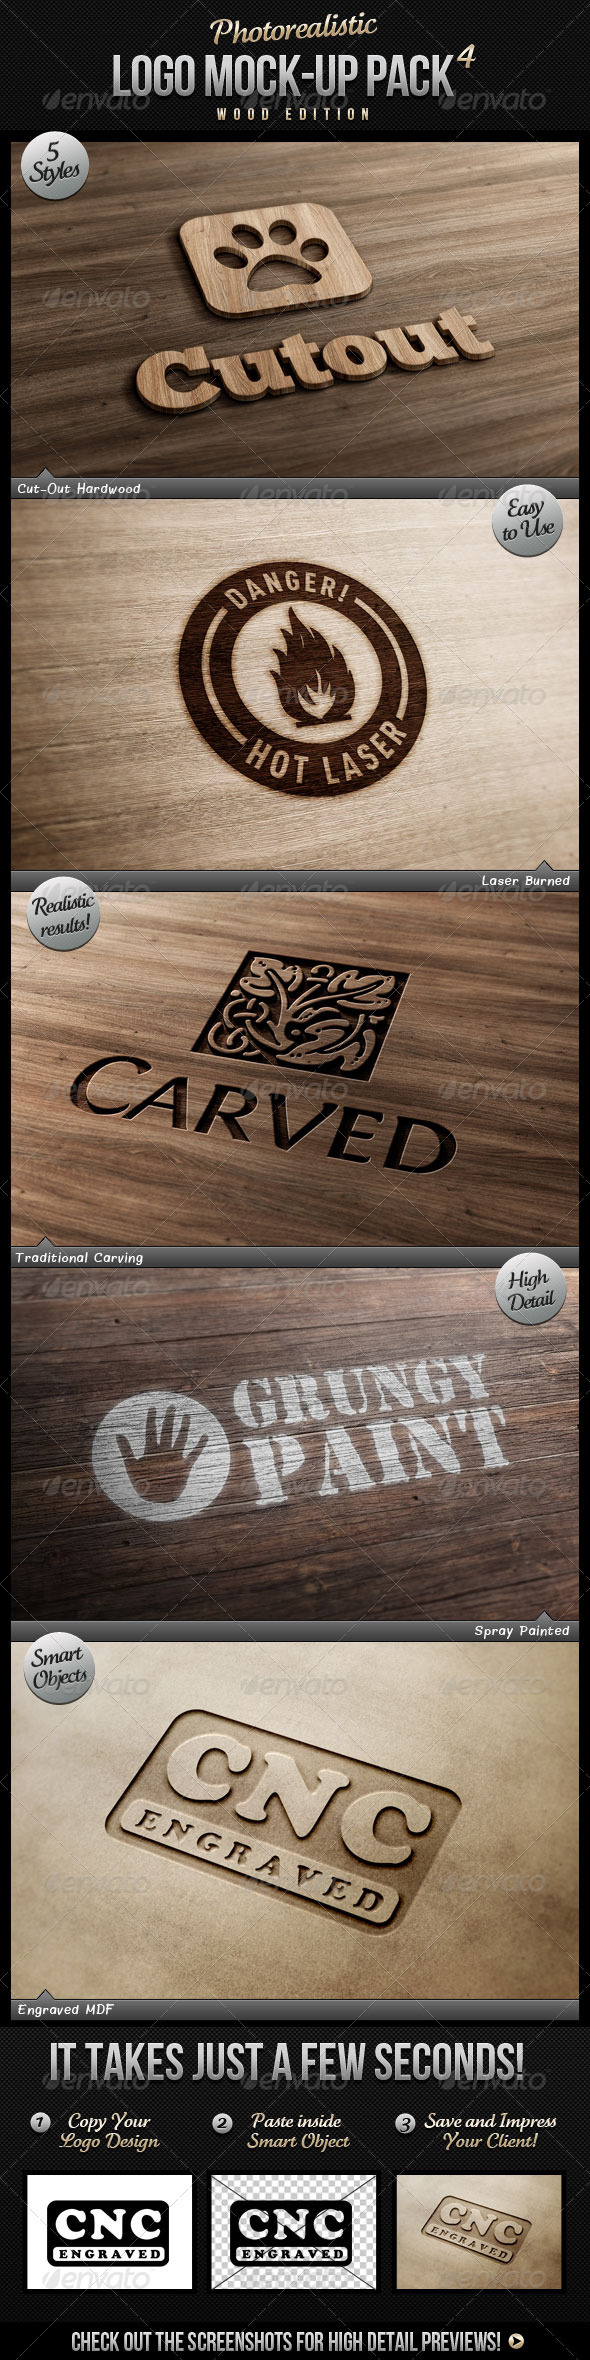 GraphicRiver Photorealistic Logo Mock-Up Pack 4 Wood Edition 2912448